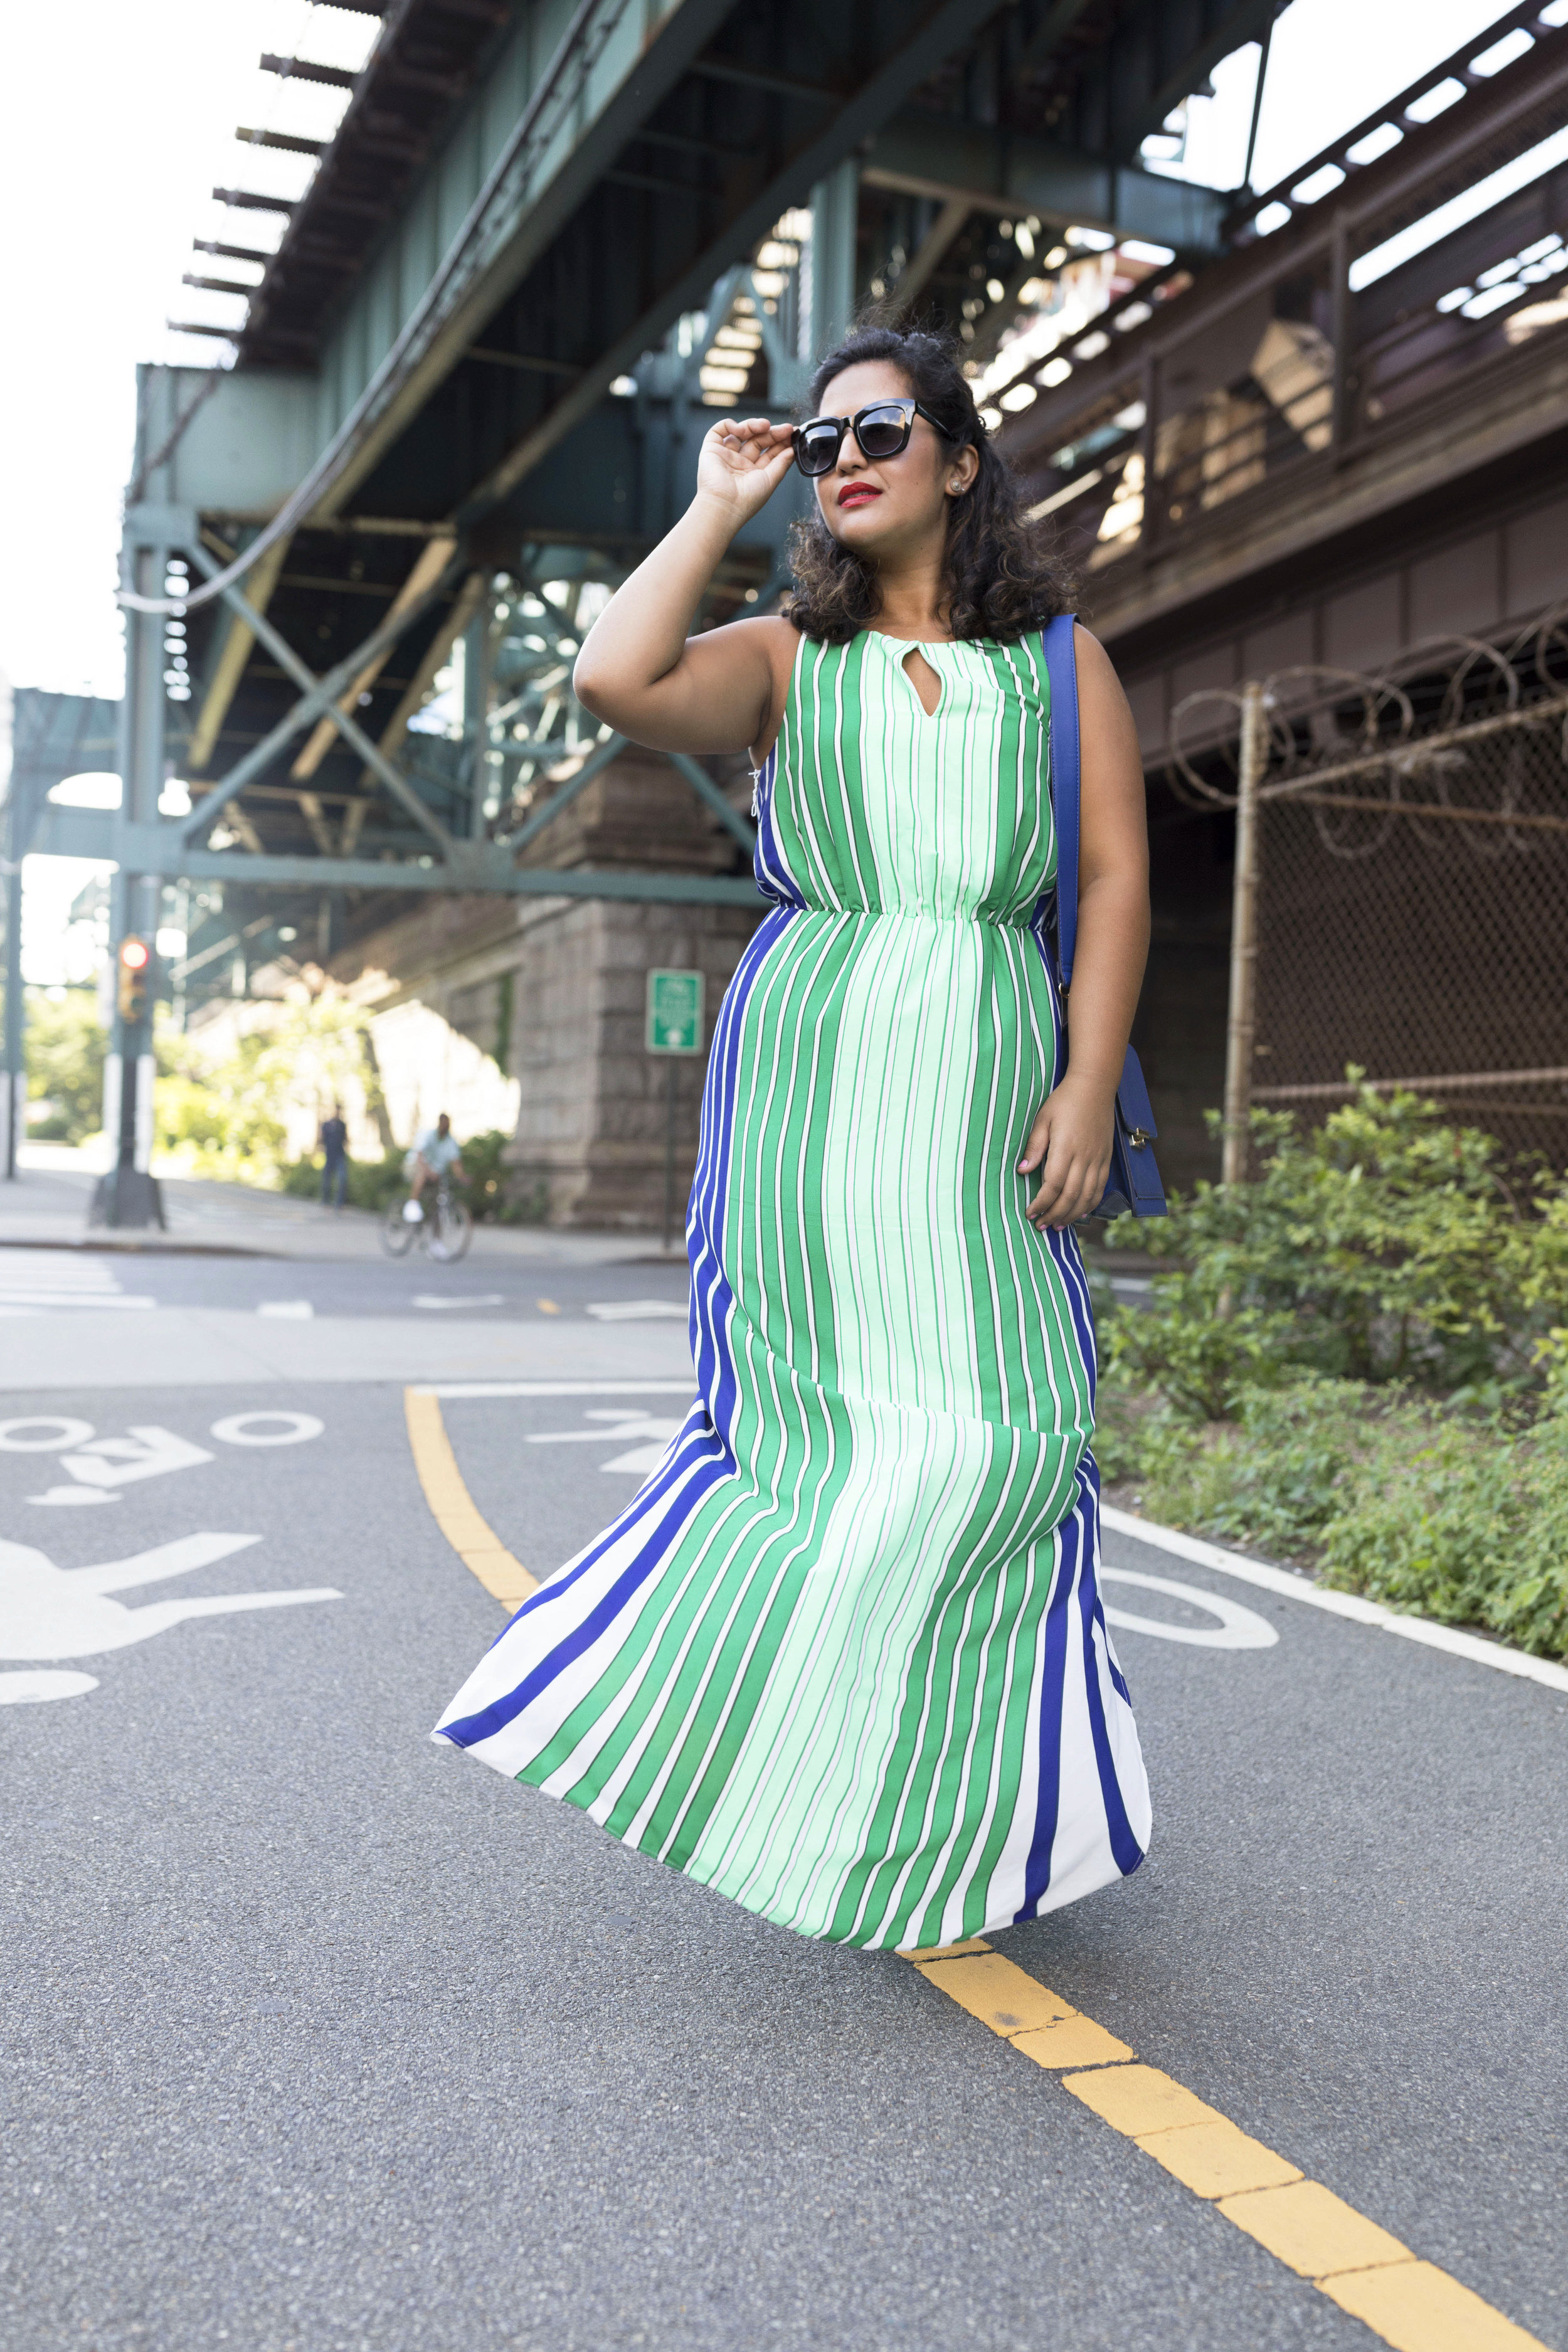 Krity S x Adrianna Papell x Stripped Maxi4.jpg